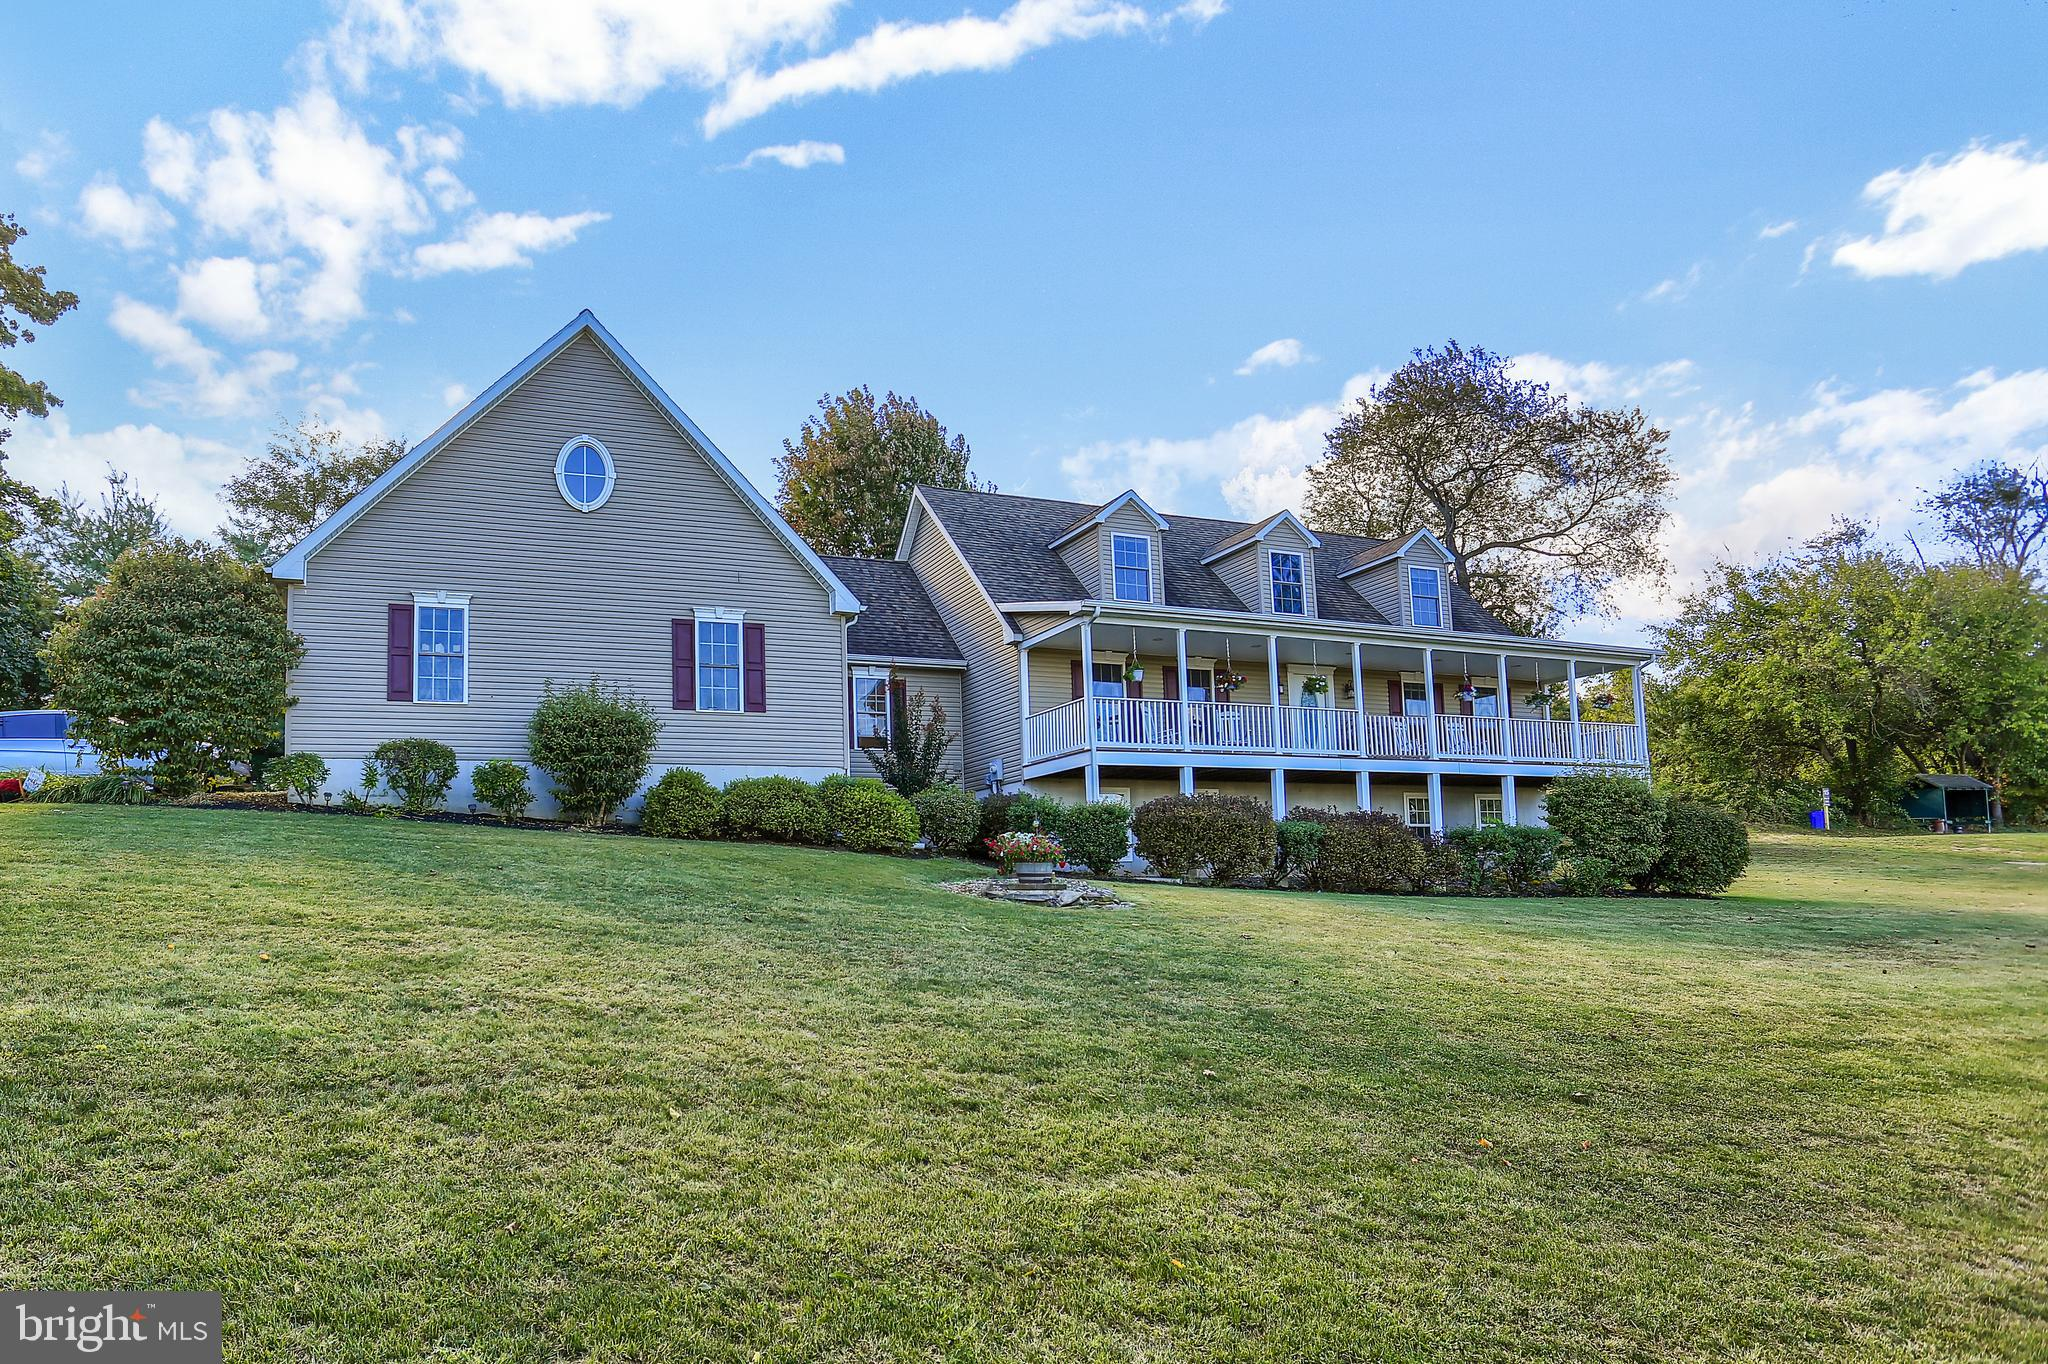 1778 ROUTE 116, SPRING GROVE, PA 17362